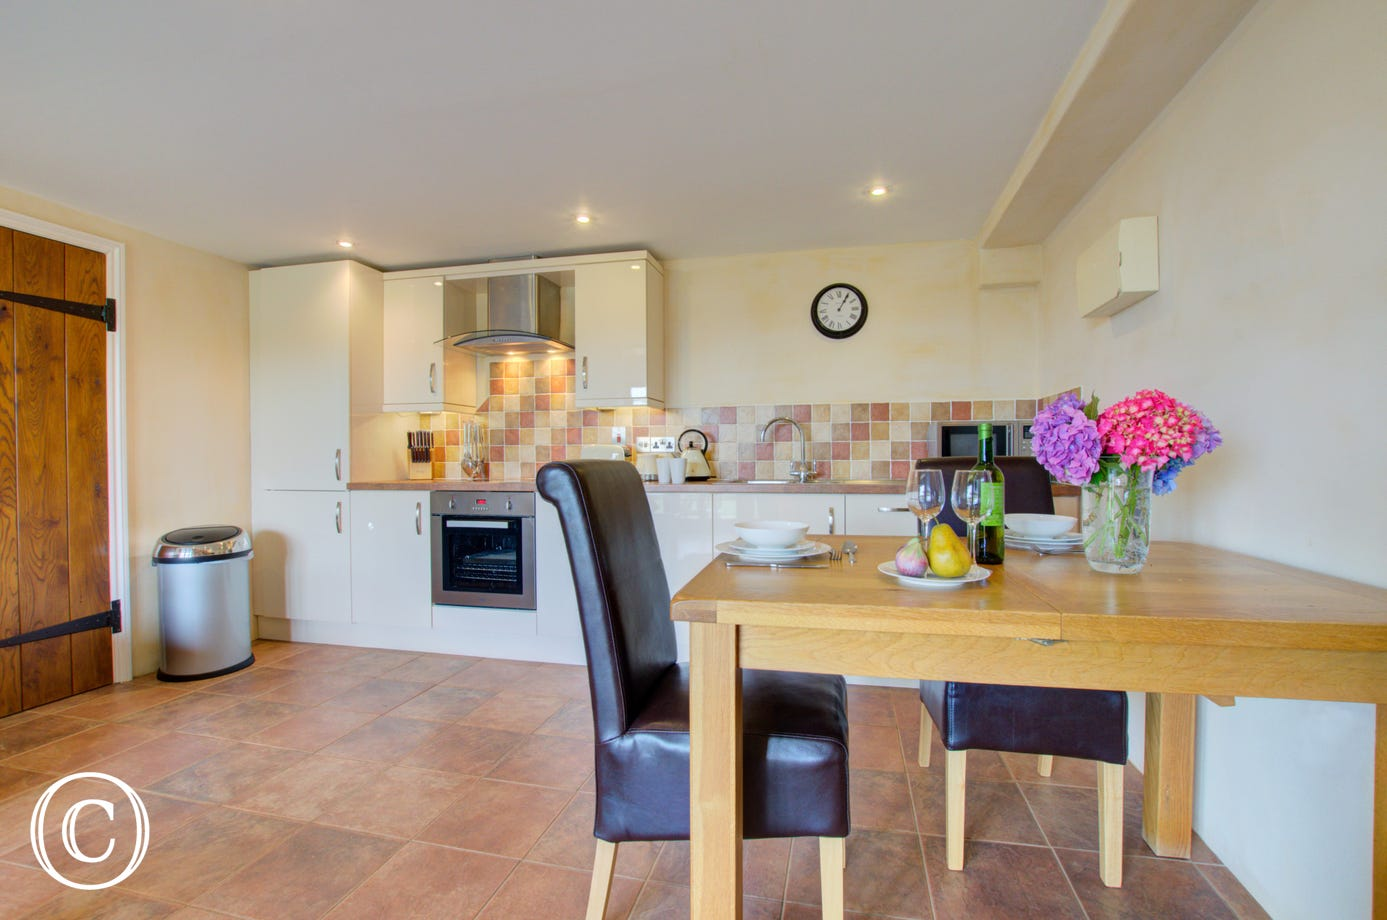 The kitchen is very well equipped and has a dining table for two